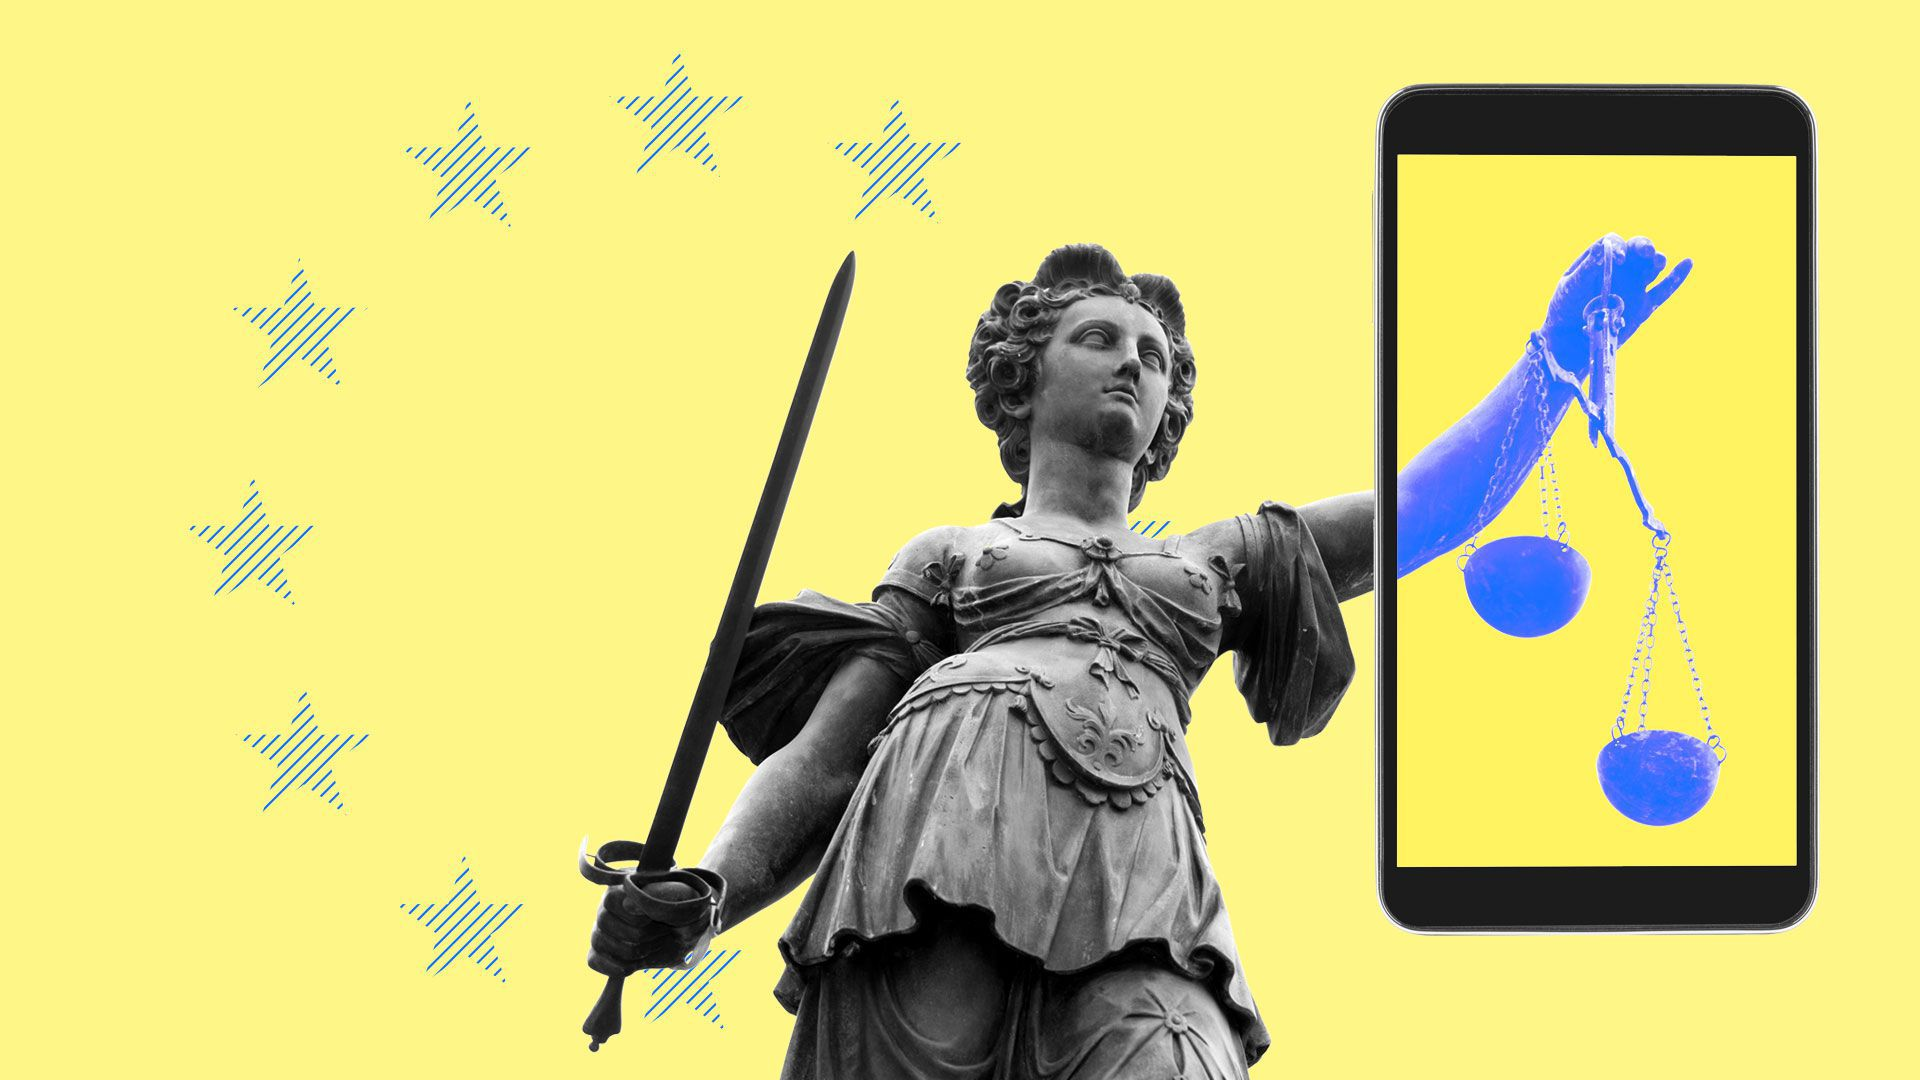 An illustration of the European flag, a statue of justice and a smartphone